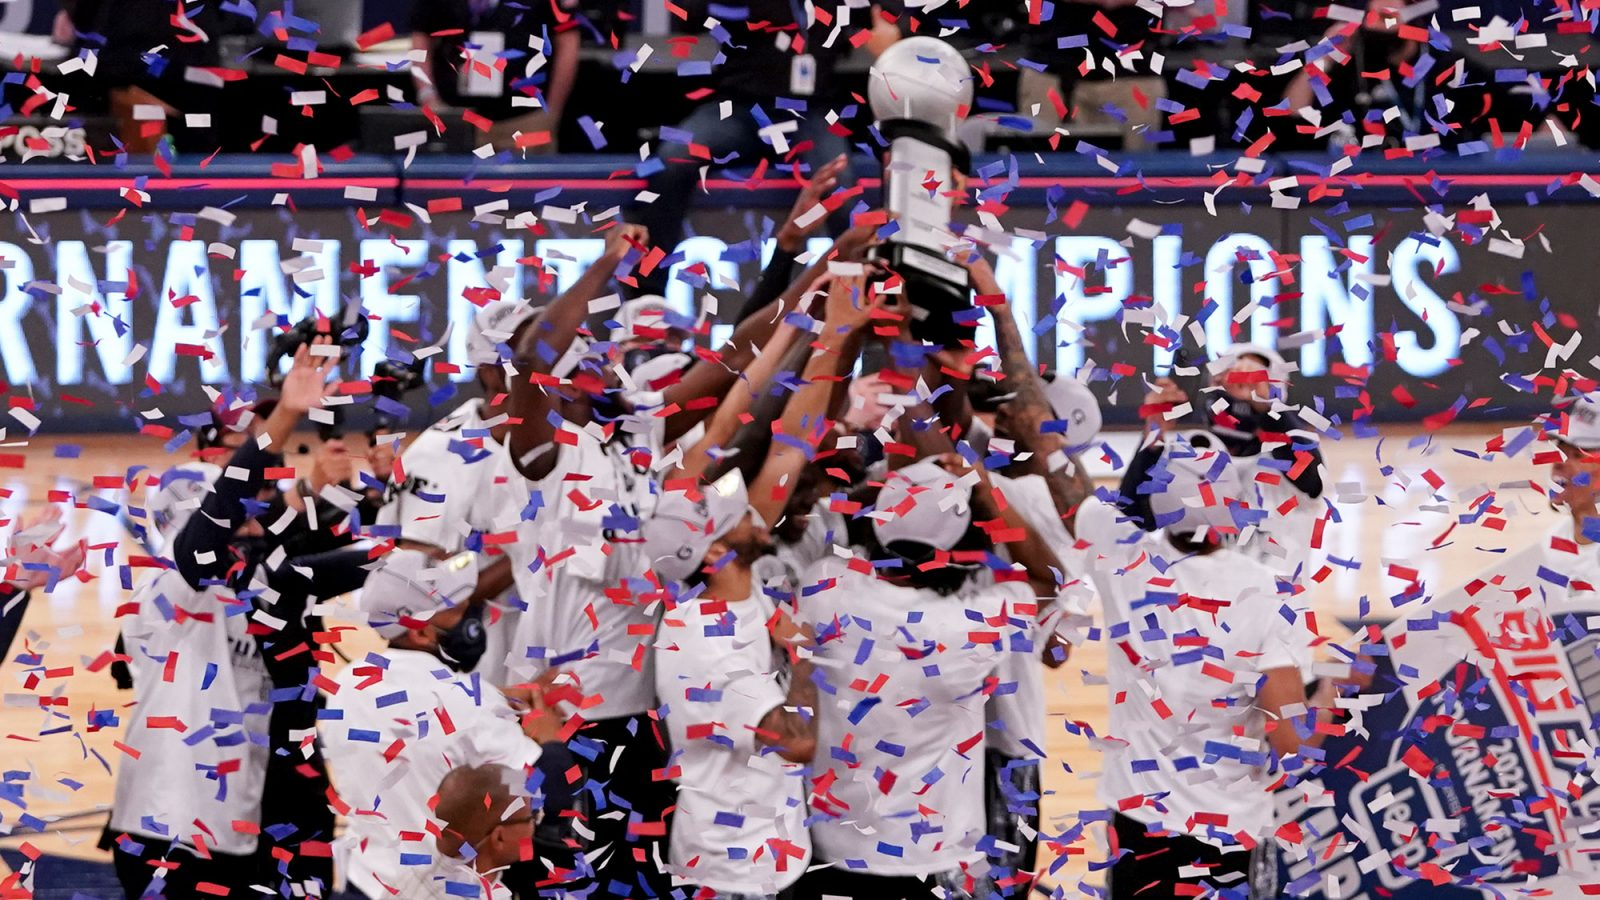 The men's basketball team celebrate on the court after winning the BIG EAST championship as confetti falls.